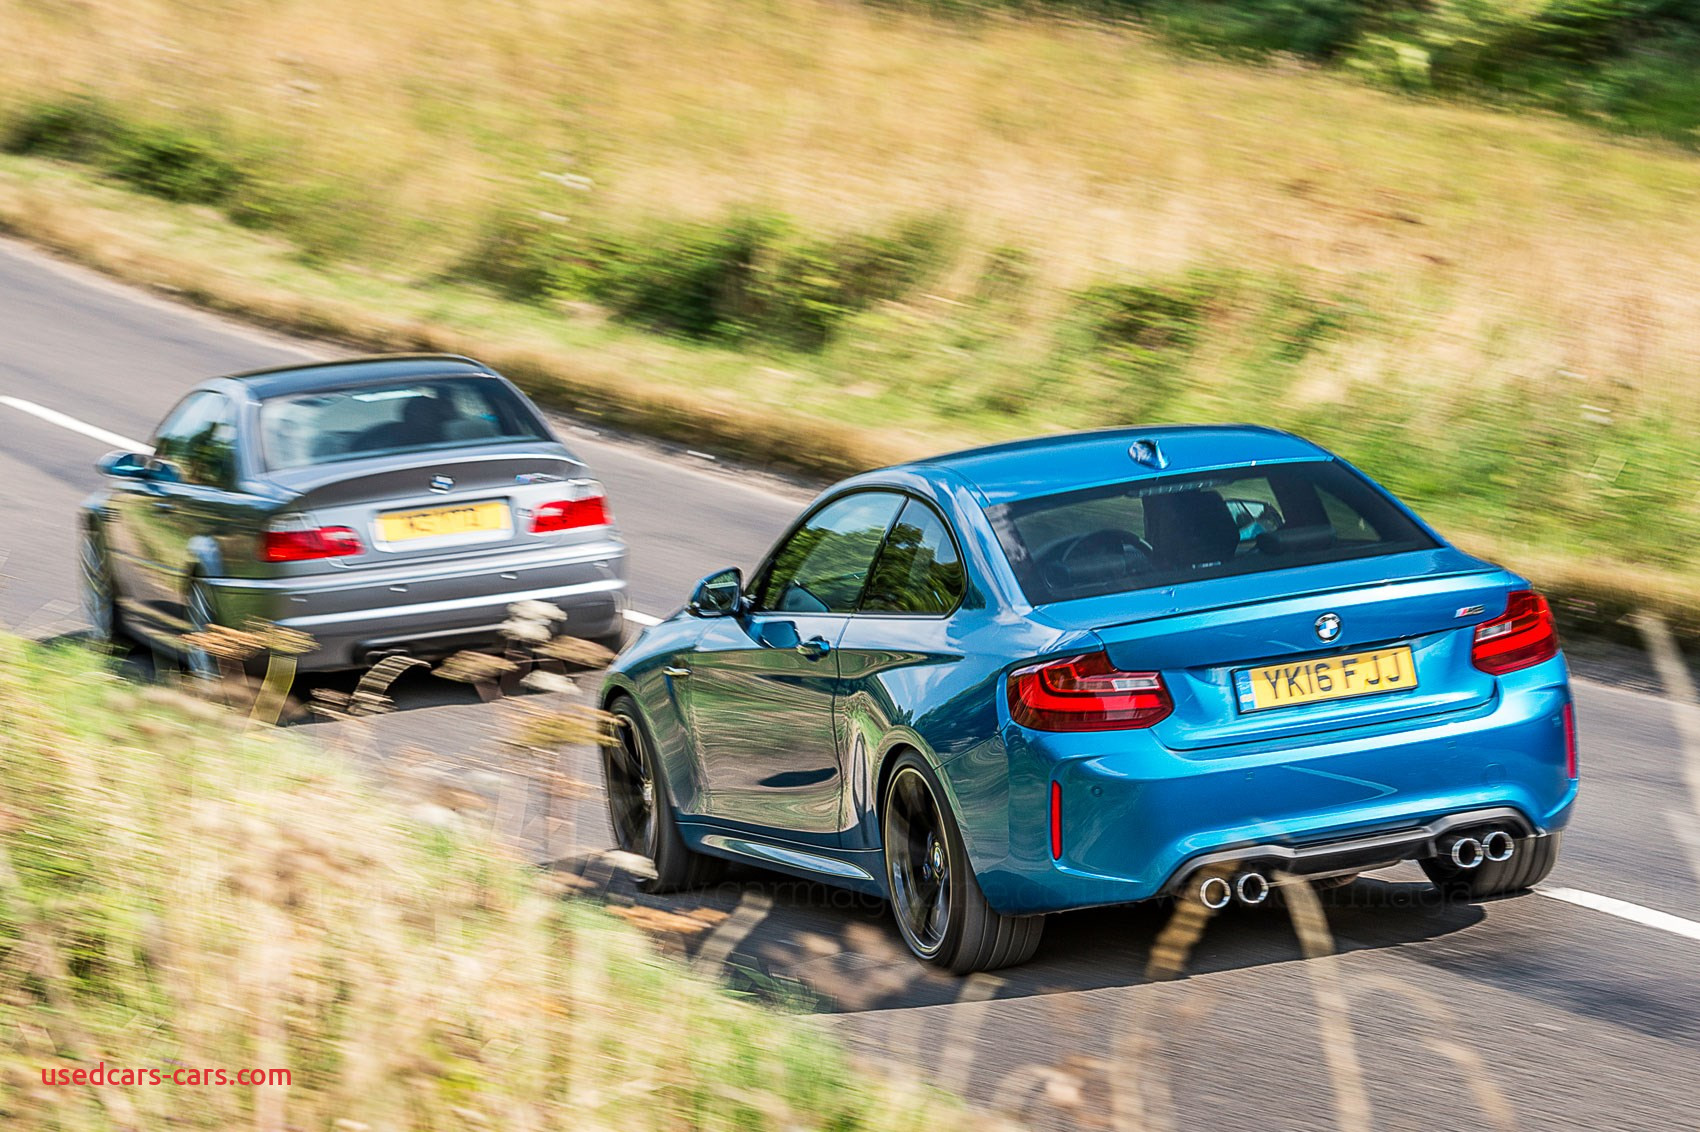 Bmw M3 Csl E46 Lovely Icon Buyer New Bmw M2 Vs Used E46 M3 Csl